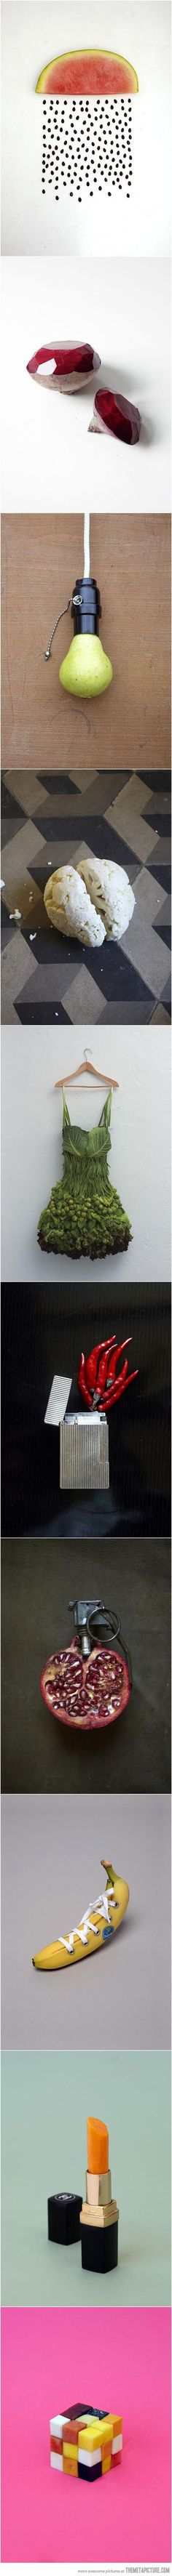 Creative food art... brilliant ideas and execution!